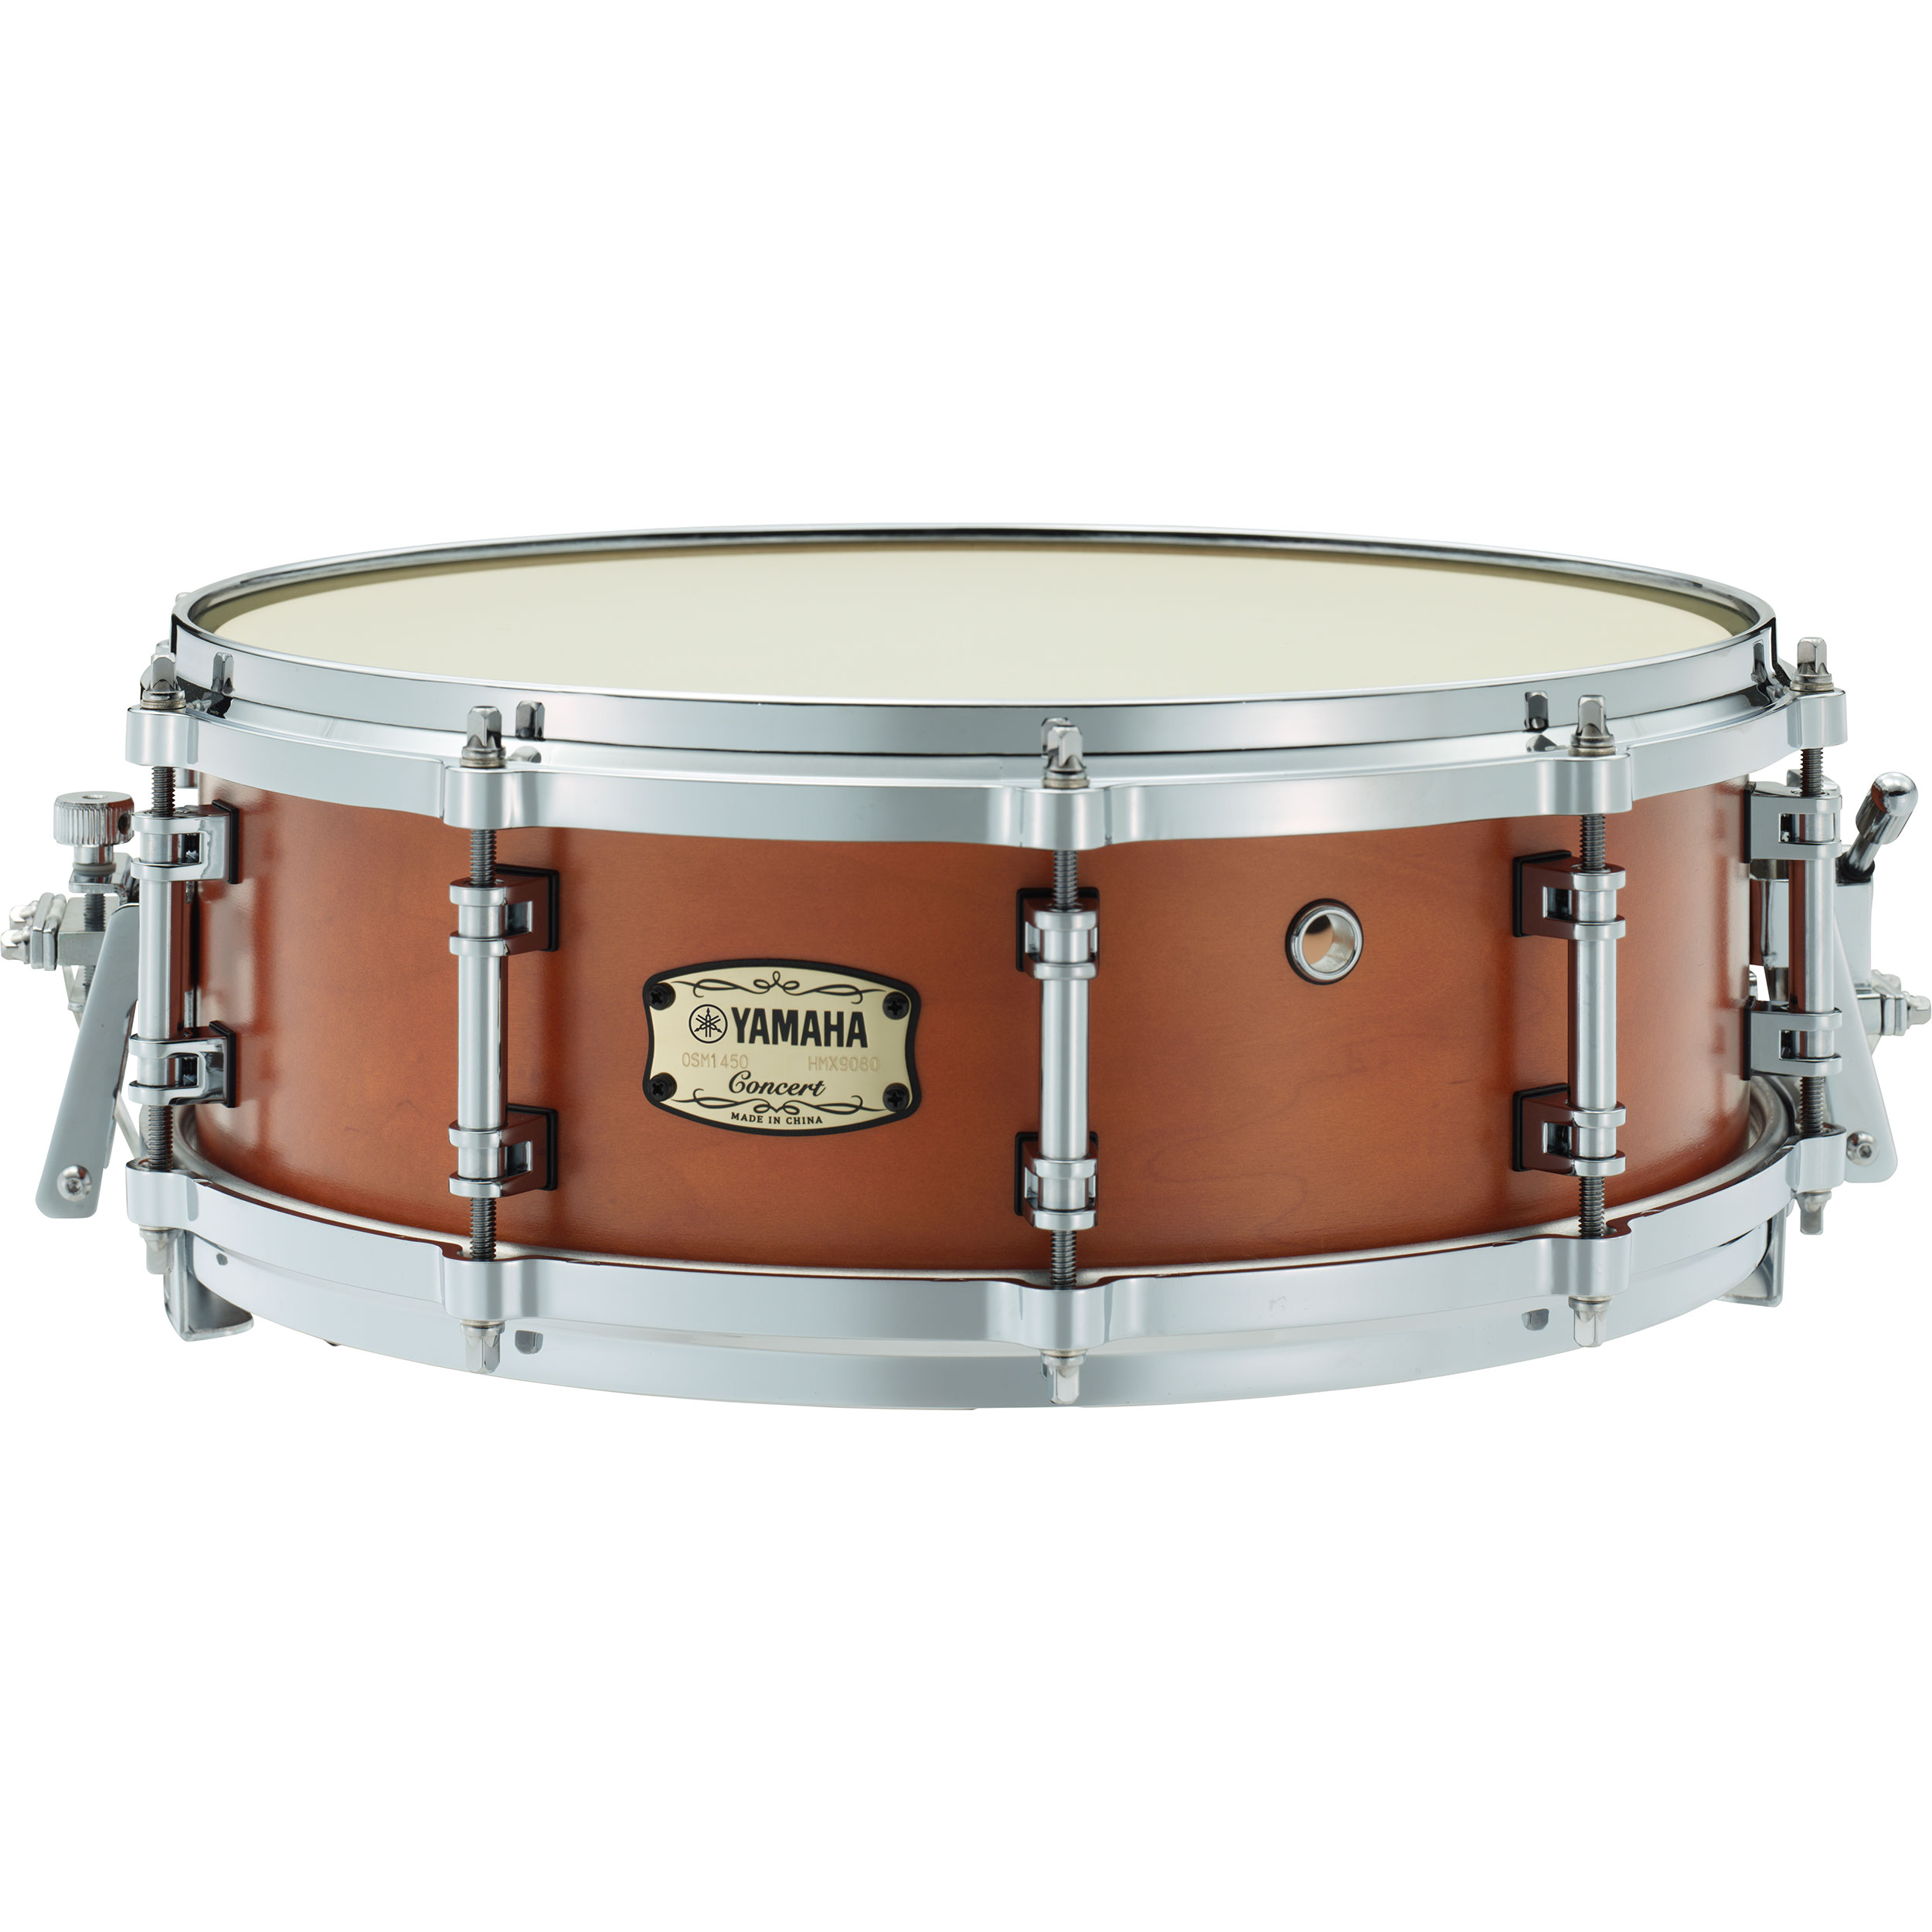 """Yamaha 14"""" x 5"""" Orchestral Series Maple Concert Snare Drum"""